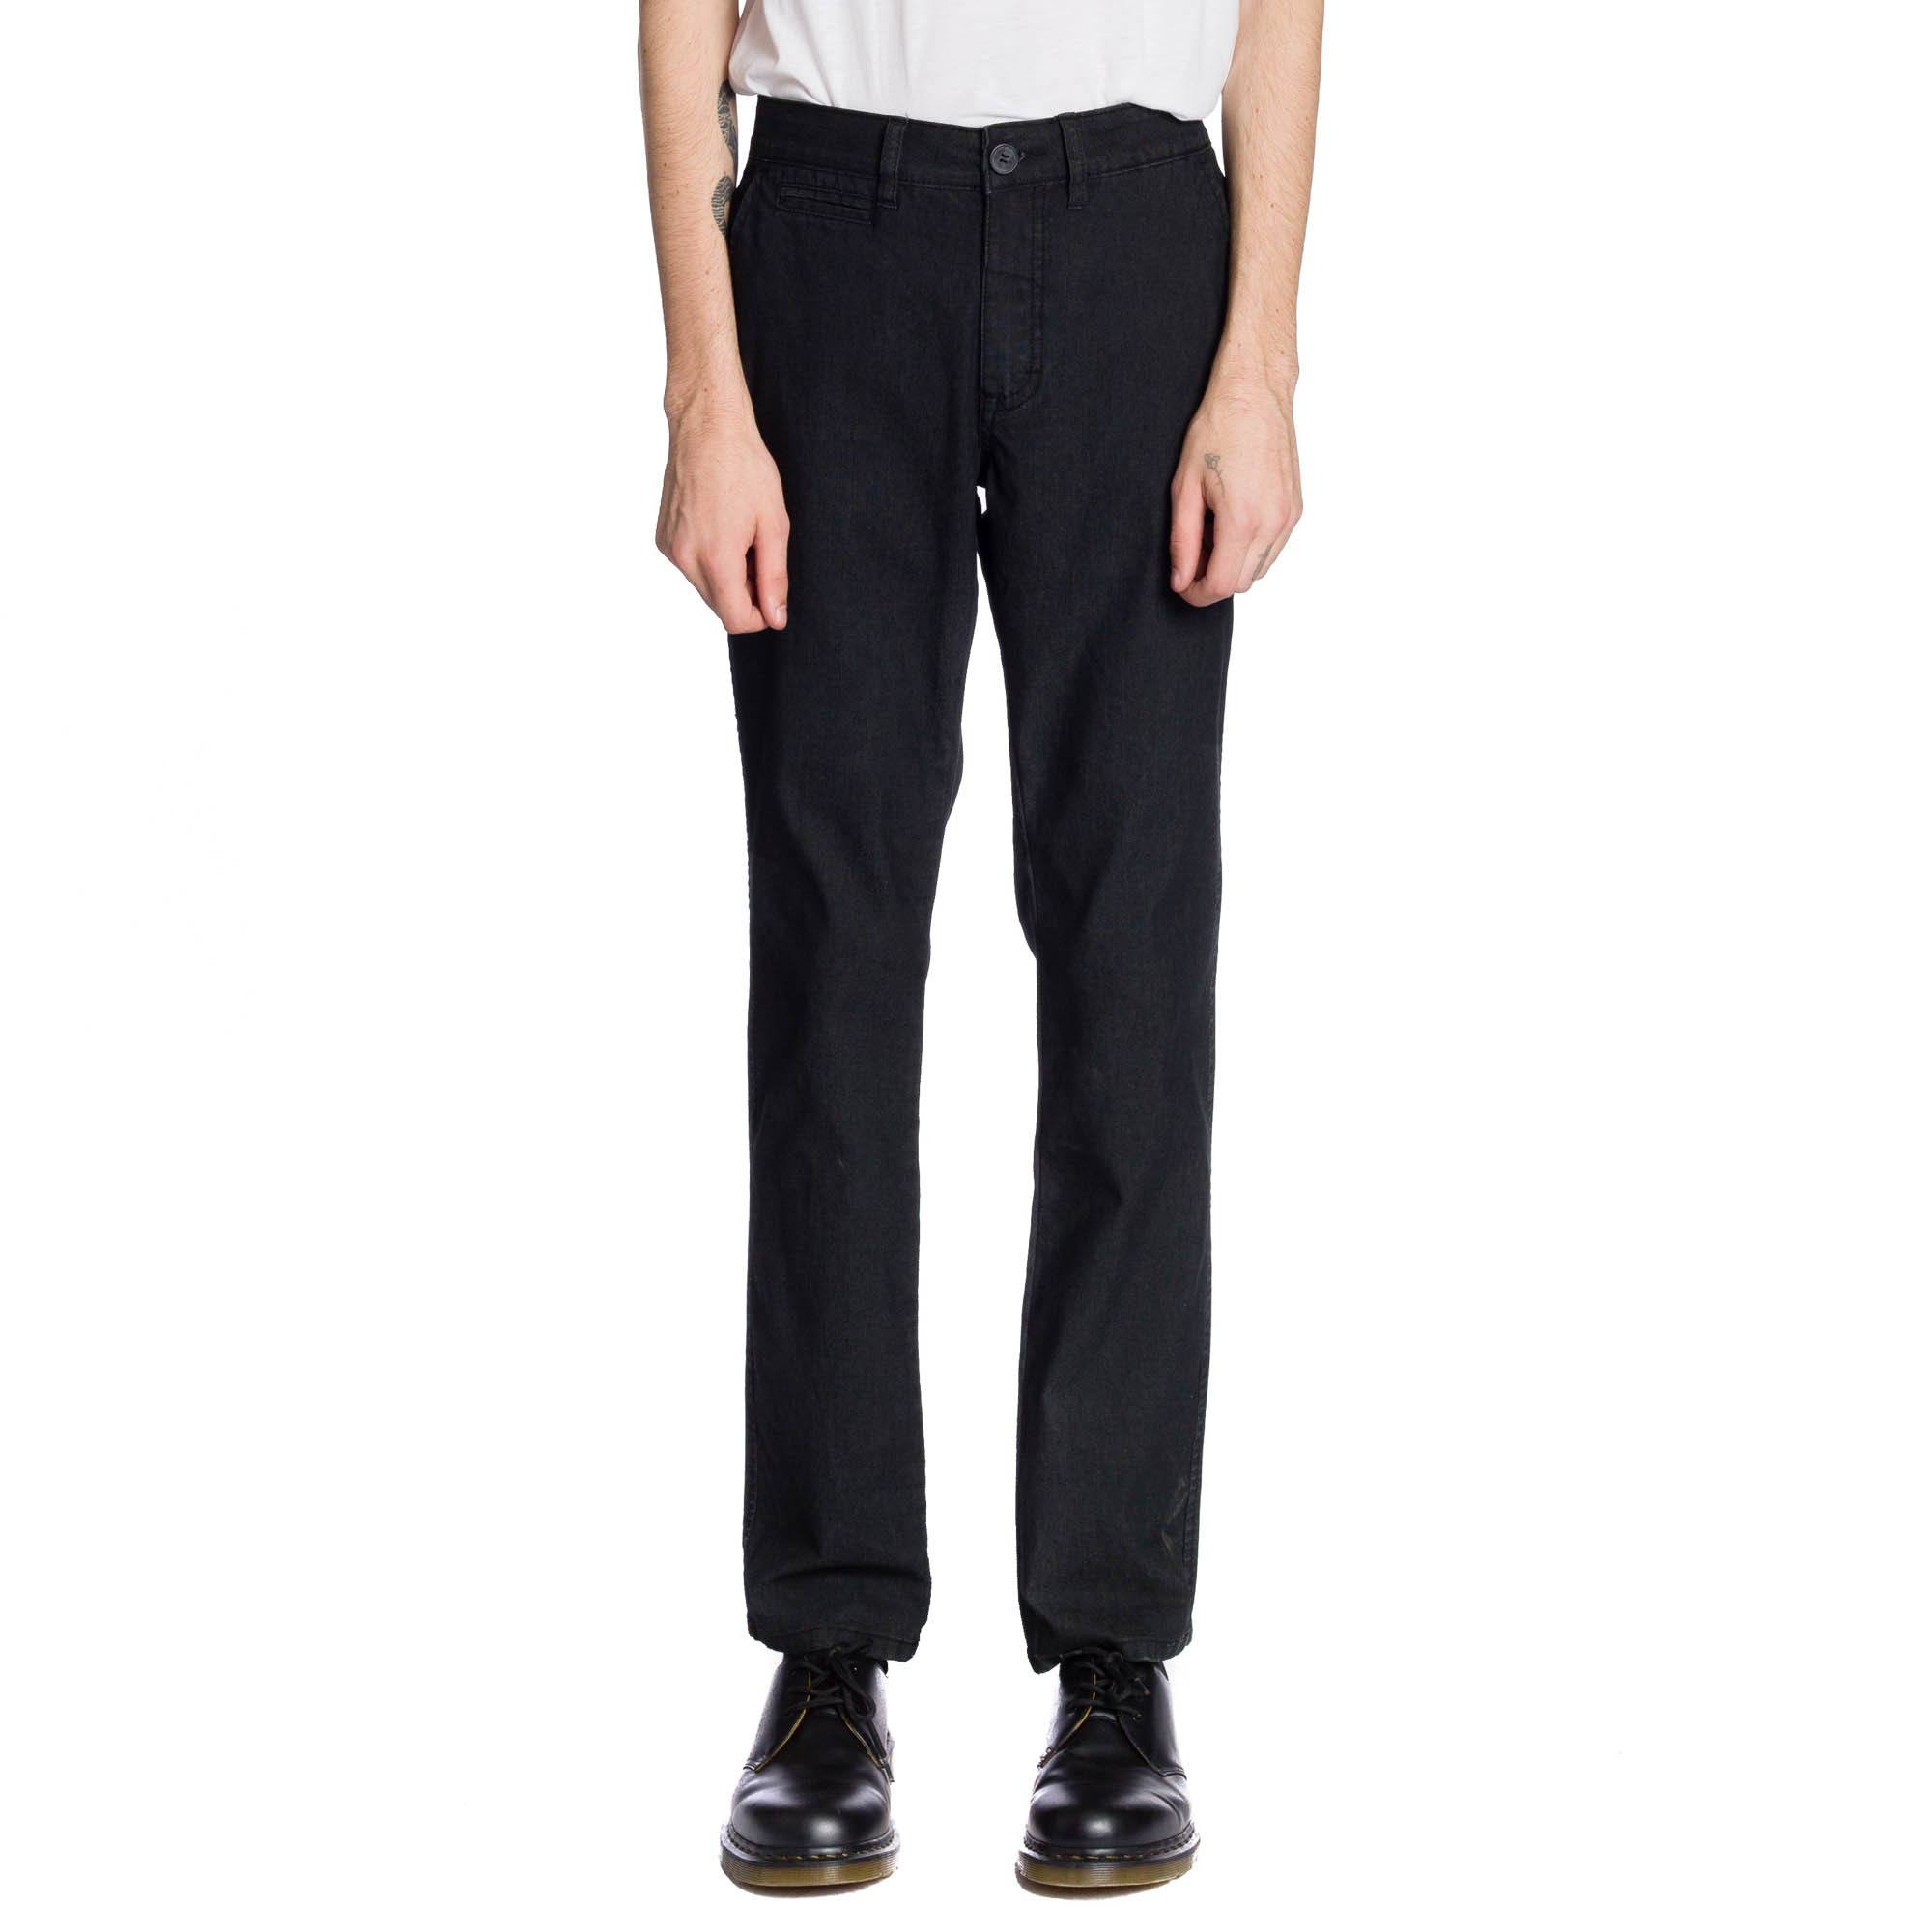 Abbott Pant - Black - Ezekiel Clothing